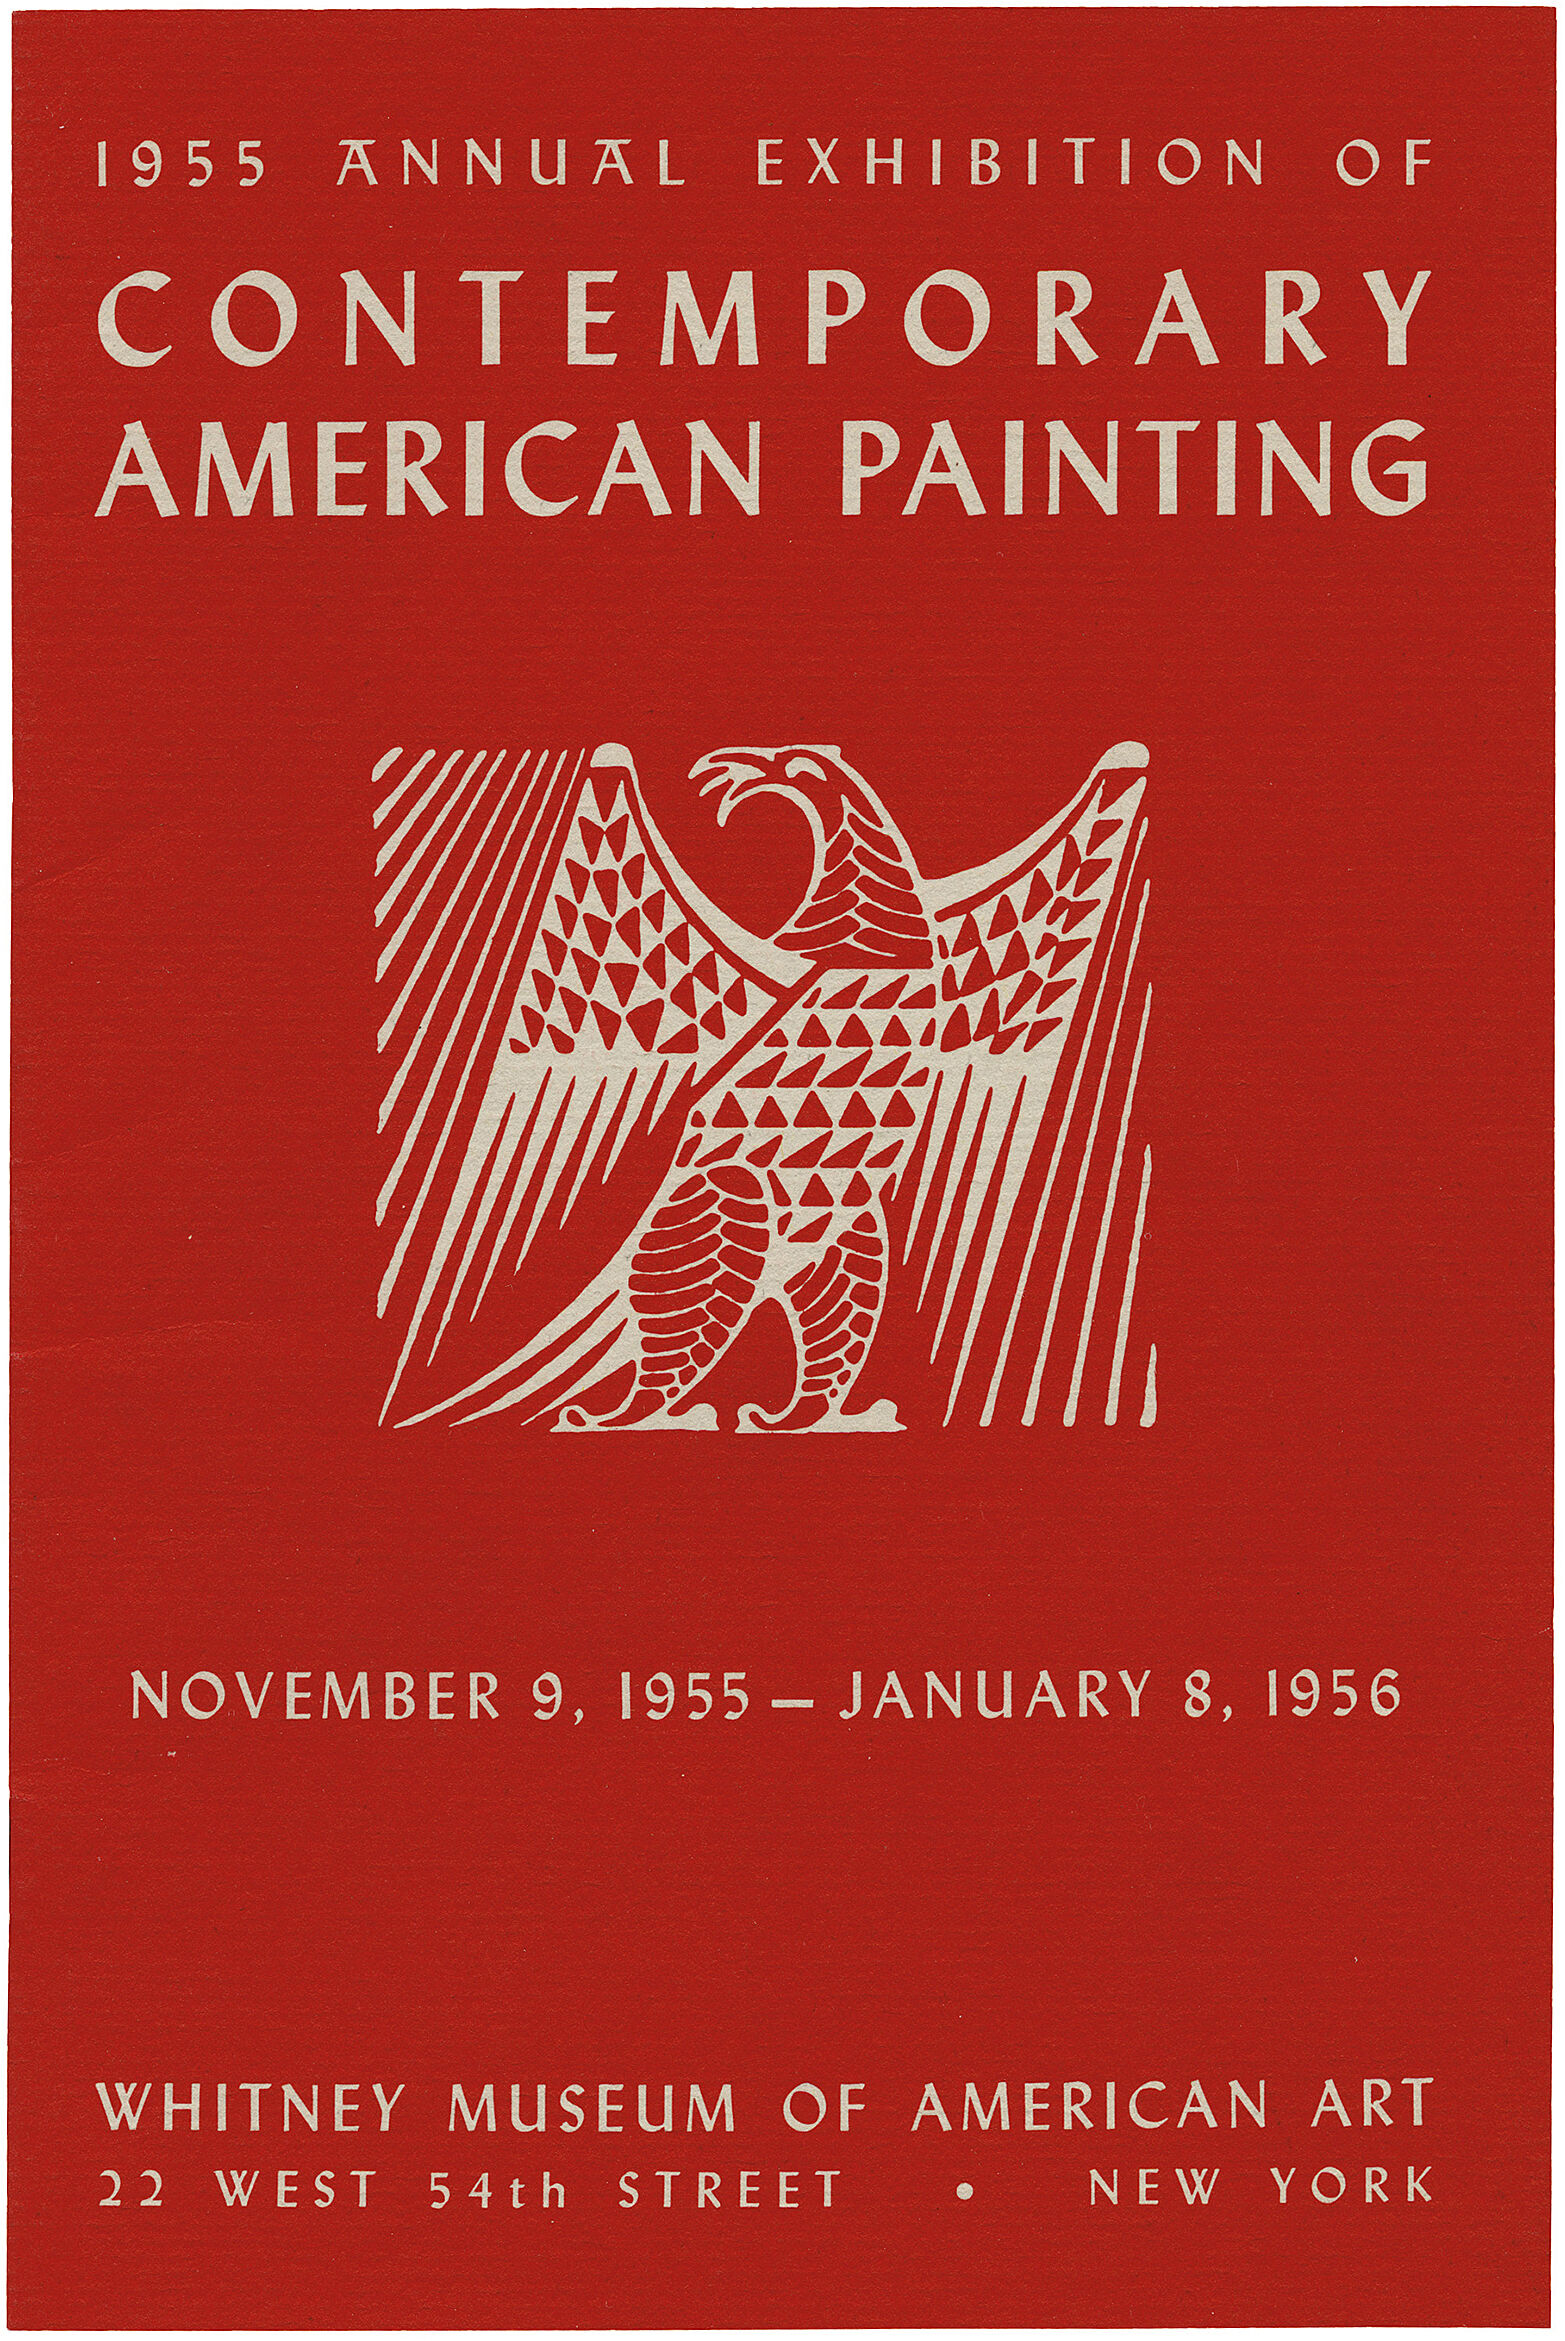 Cover for 1955 Annual Exhibition of Contemporary American Painting catalogue